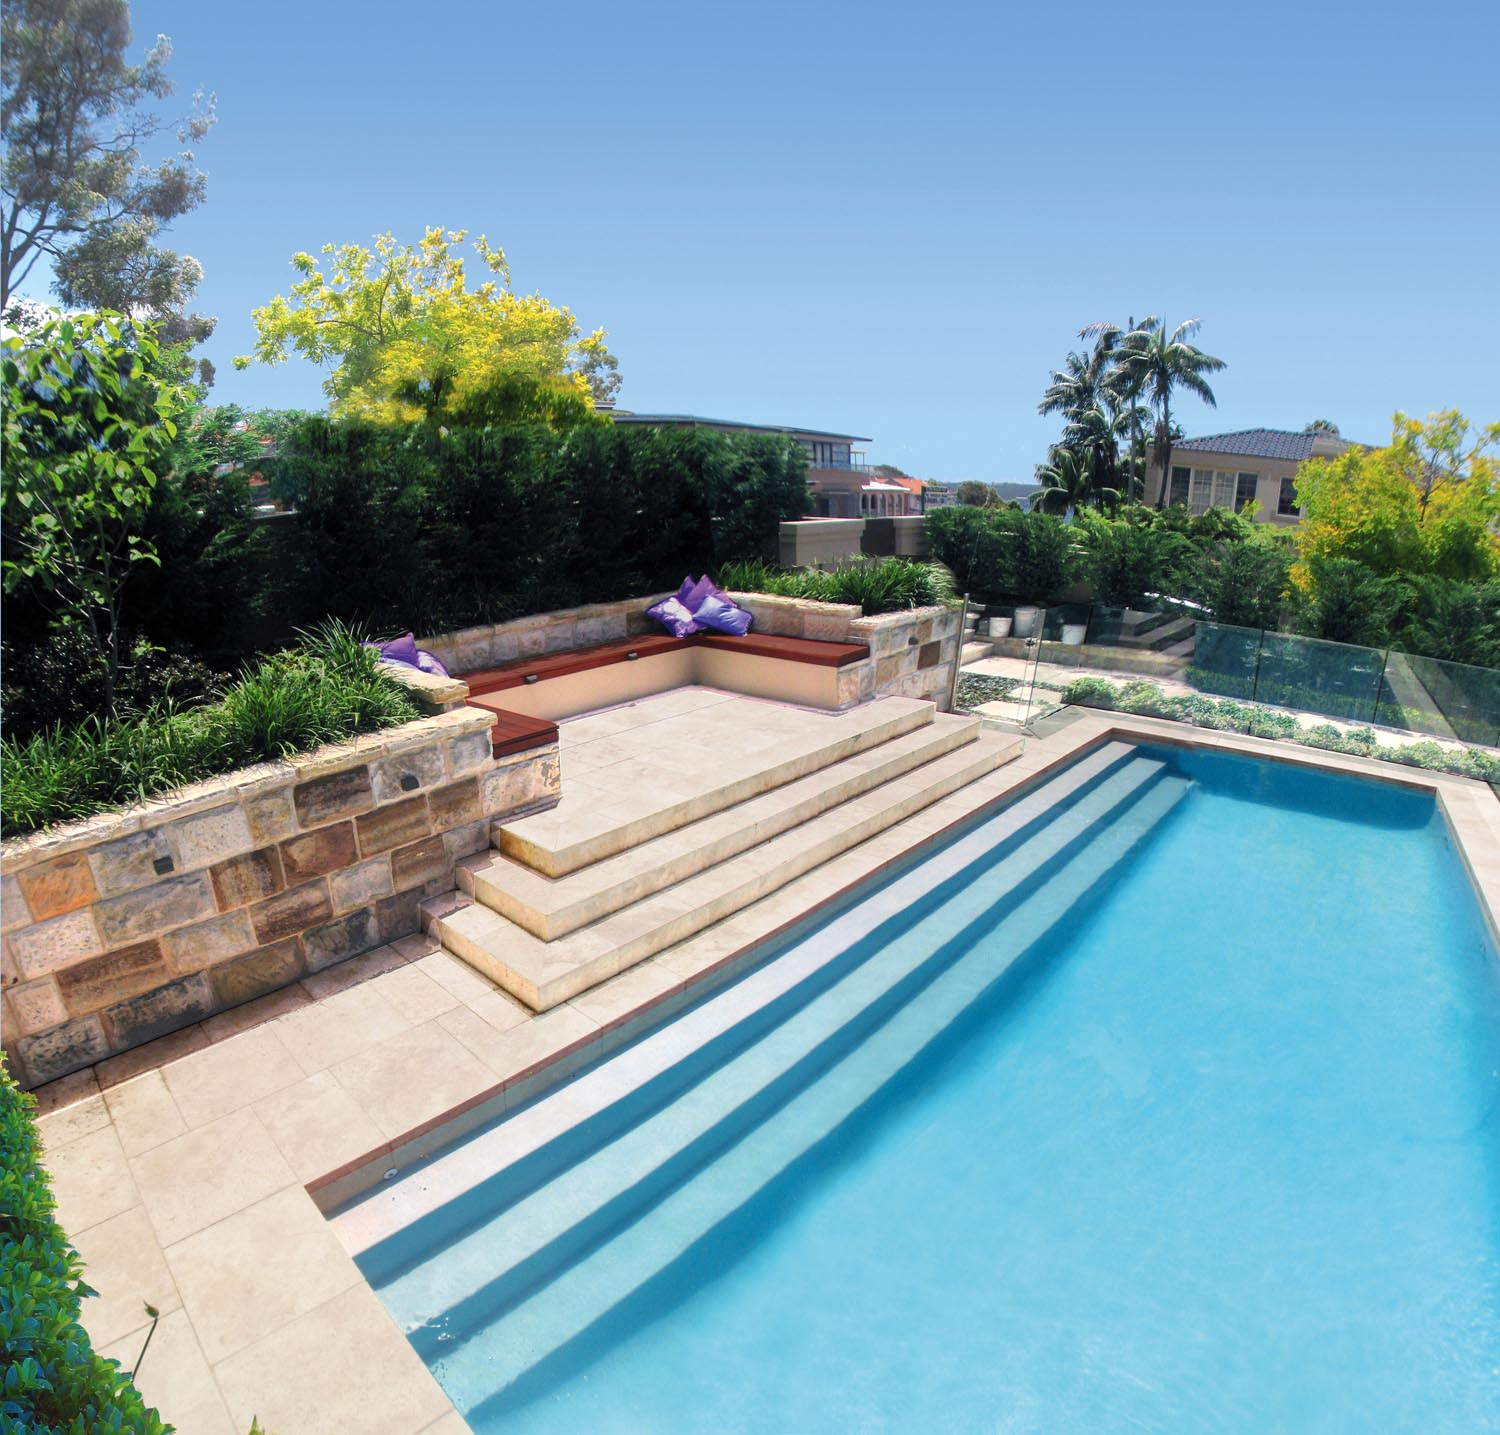 A modern pool with descending steps along the way surrounded by a garden